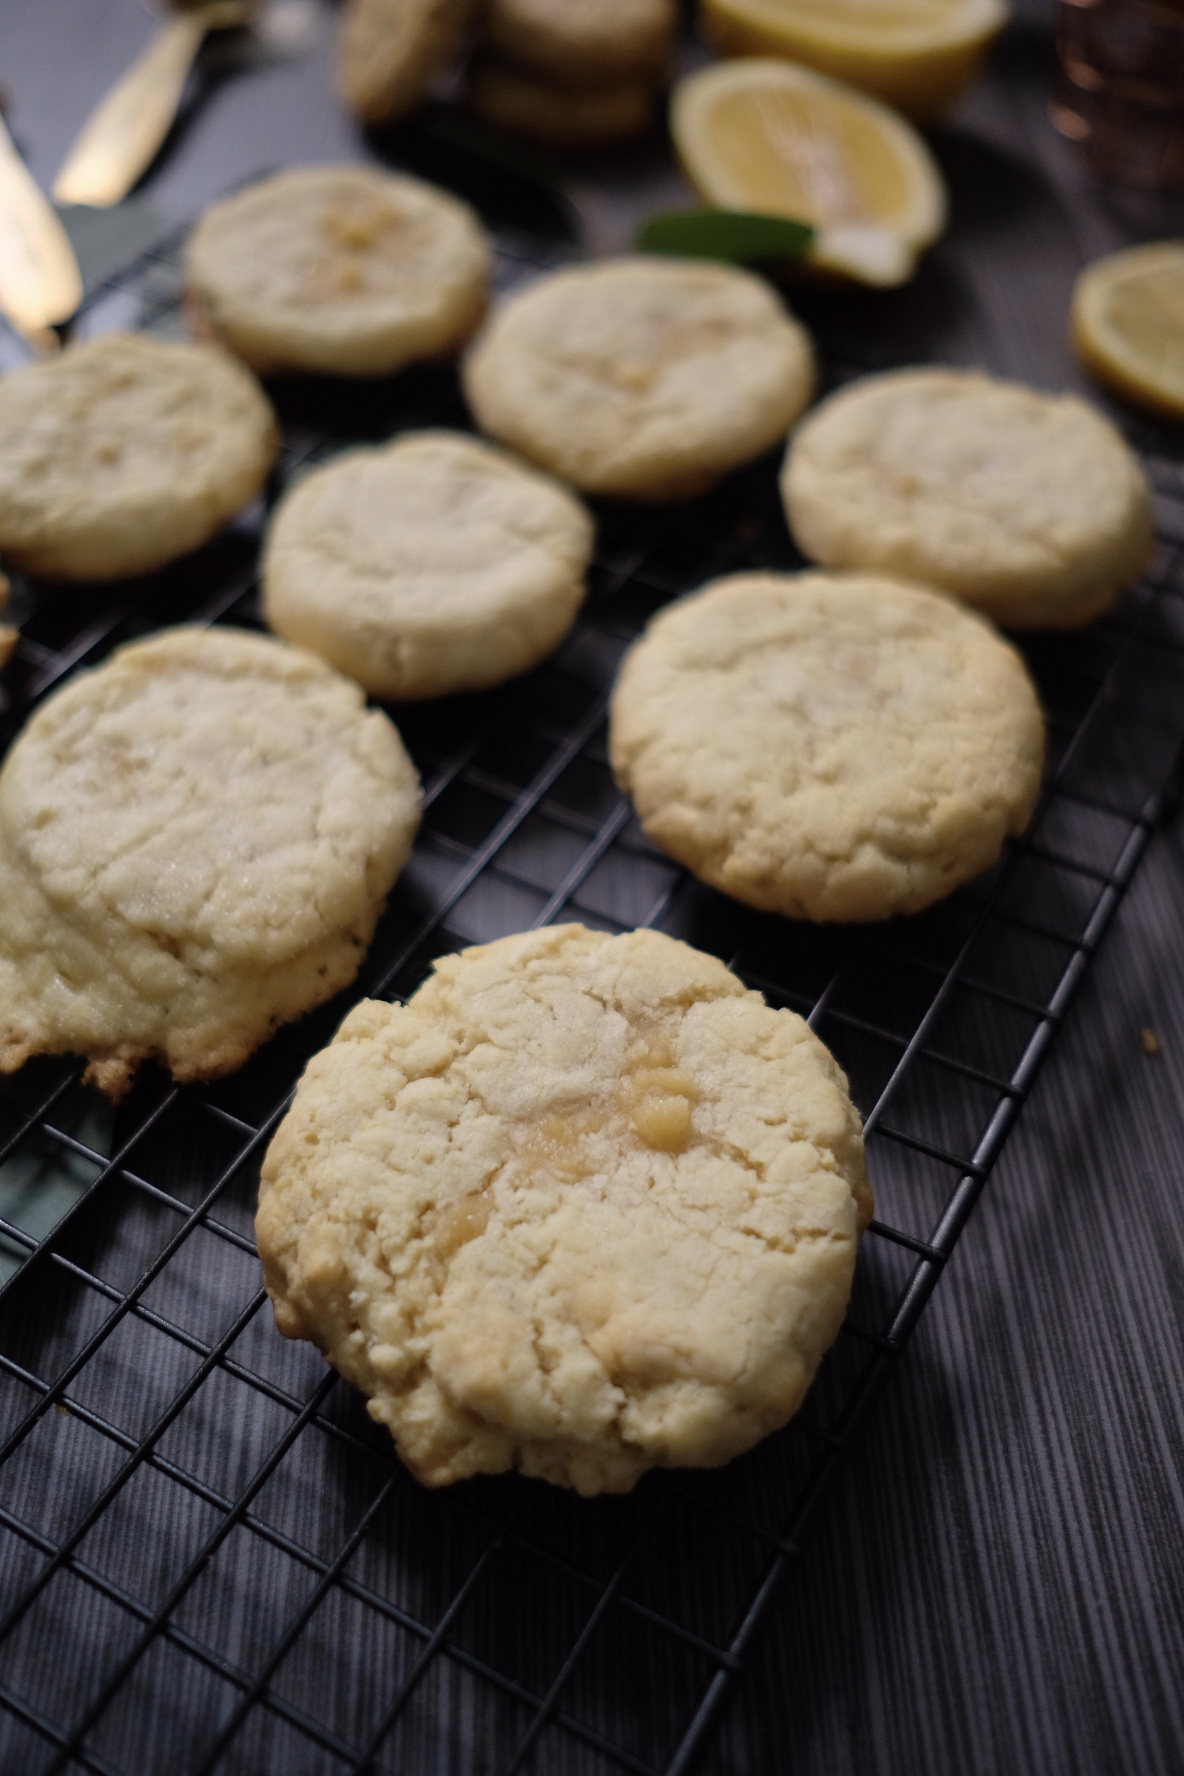 Lifestyle Blogger Chocolate & Lace shares her recipe for Chewy Lemon Sugar Cookies